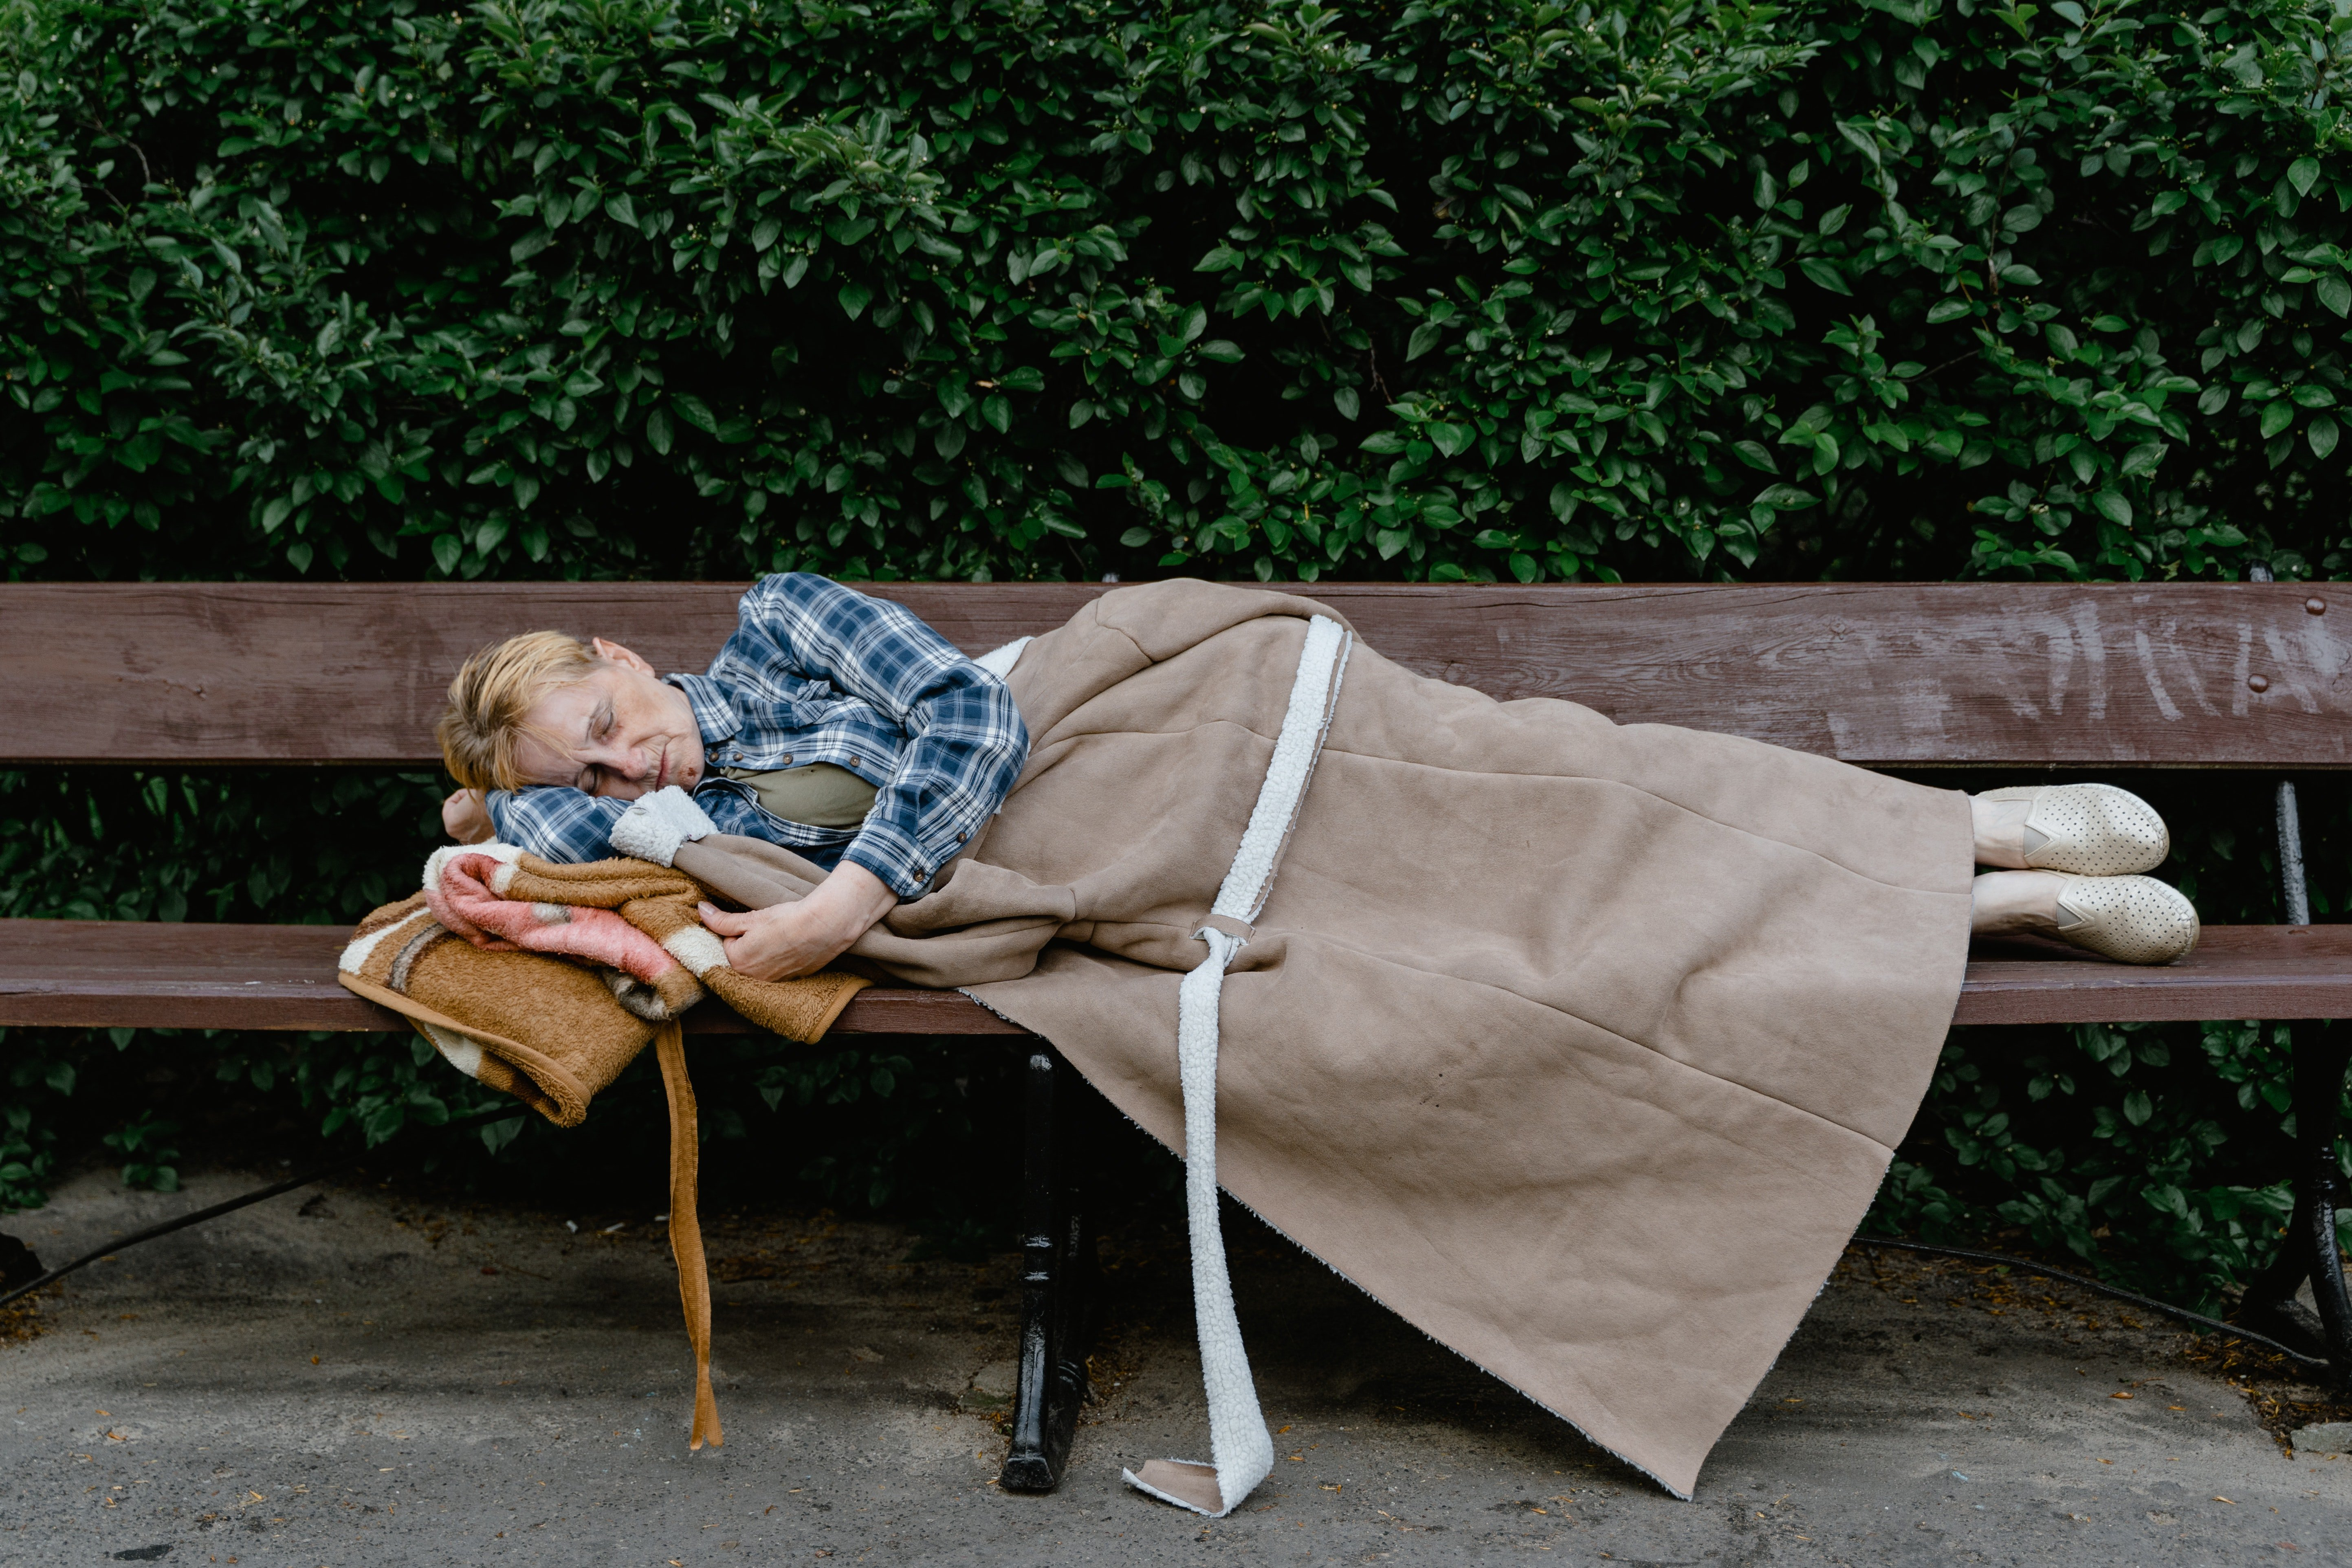 I saw a man sleeping on a bench and I recognized him.   Source: Pexel